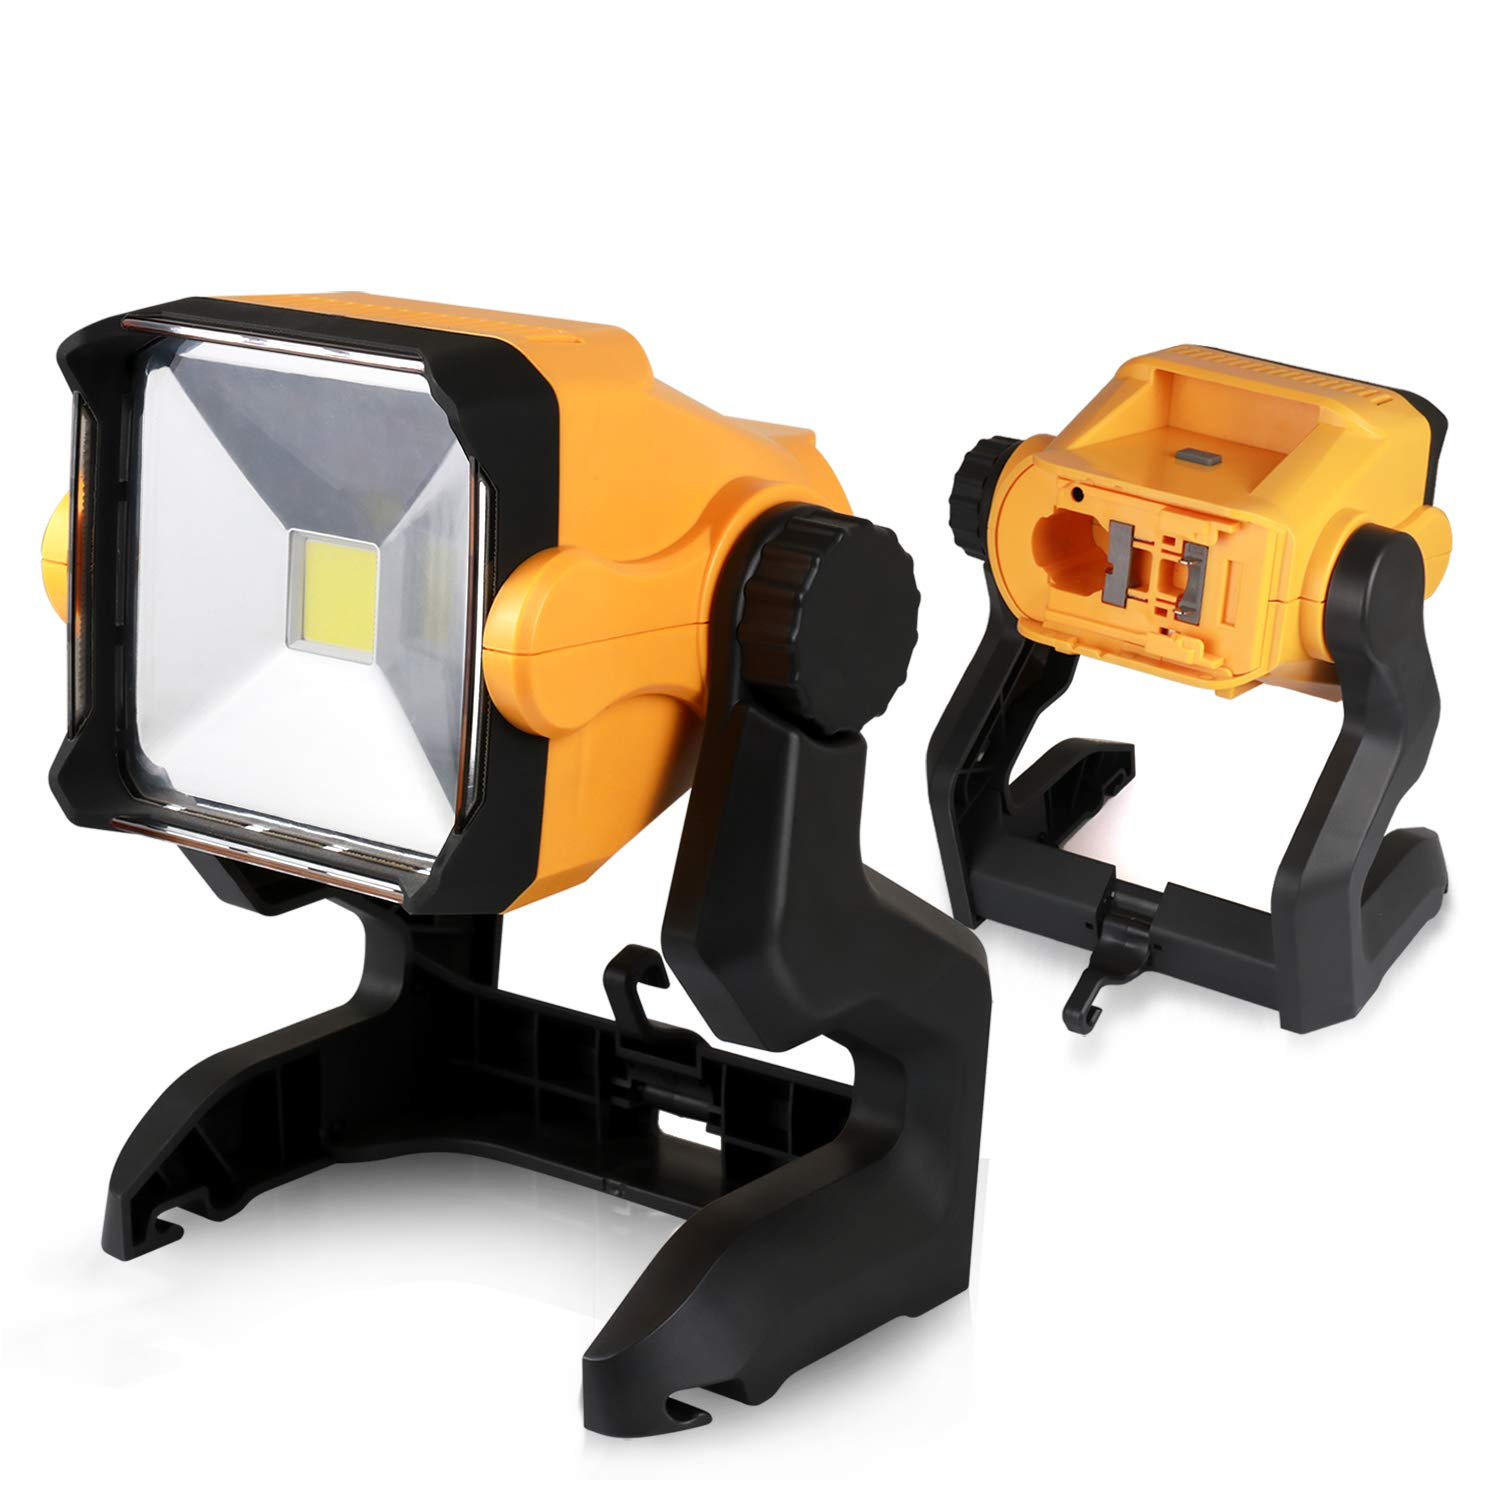 Ryobi Work Light - Enegitech 20W 2800LM 4000K LED Working Light Powered by Cordless Tool Battery and DC Adapter, Multiple Mount for Jobsite, Workshop, Construction Site